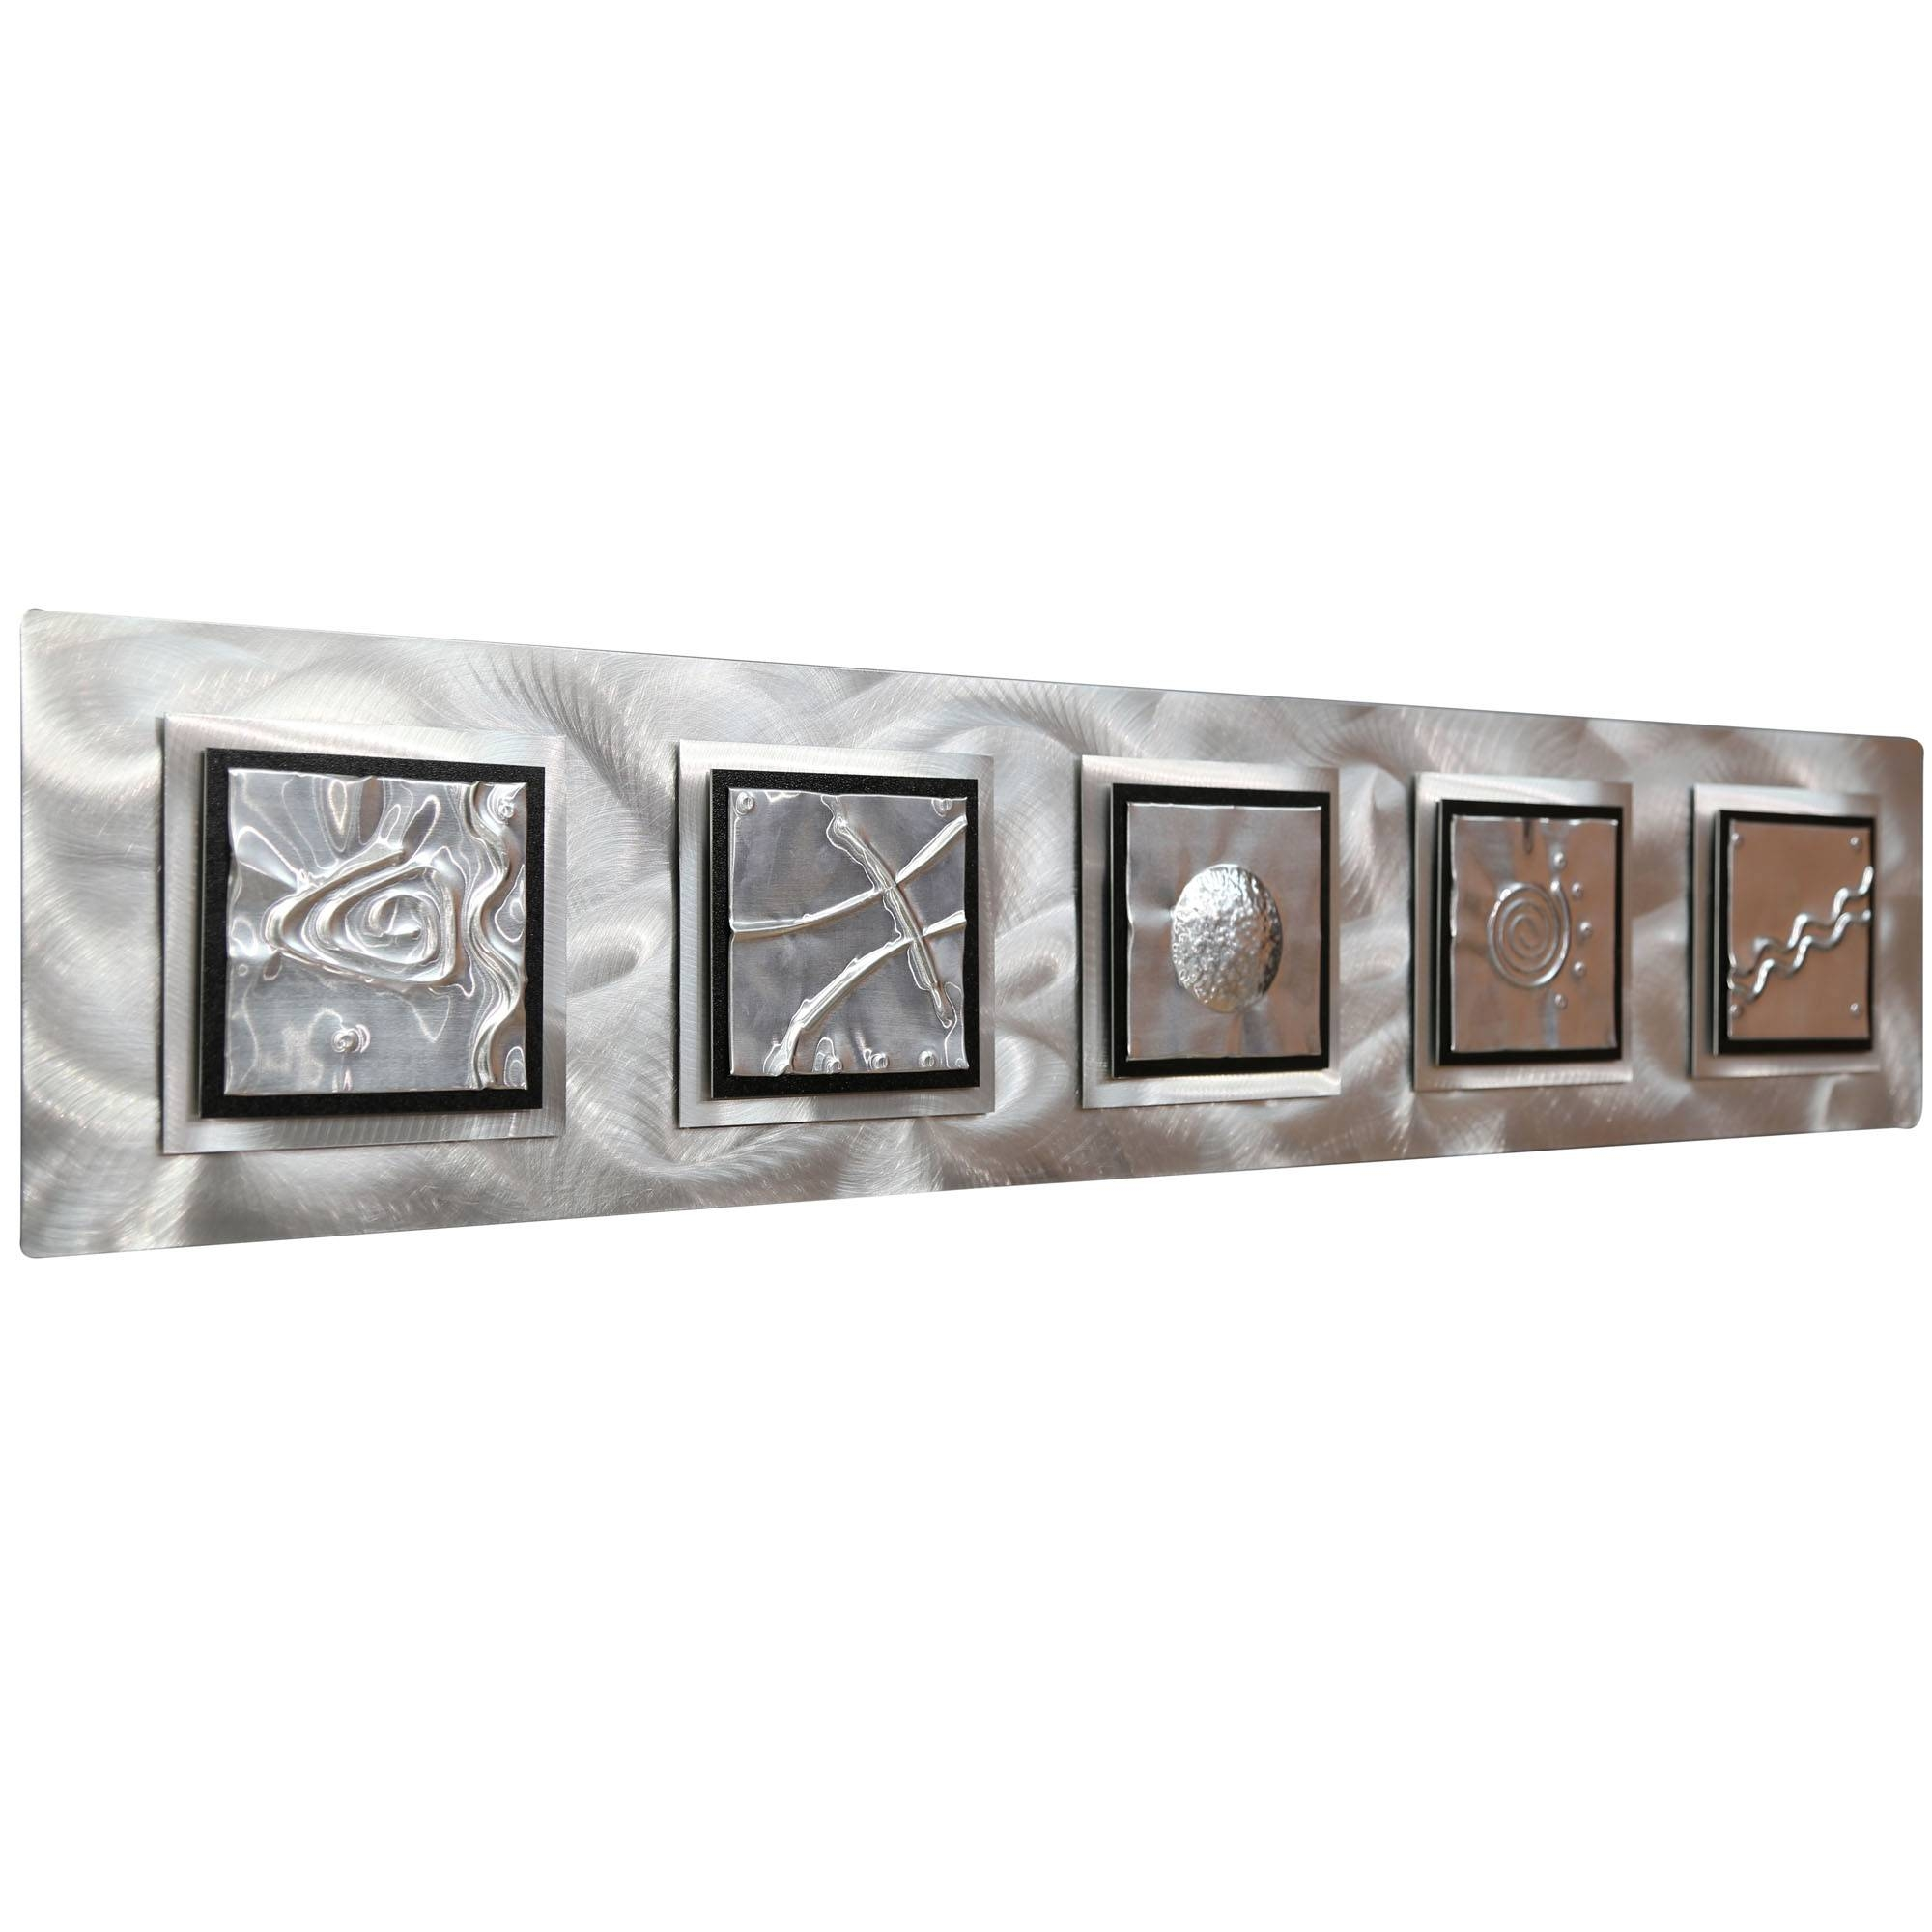 5 Elements – Silver/black Zen Metal Wall Art Accentjon Allen In Latest Elements Metal Wall Art (View 1 of 20)